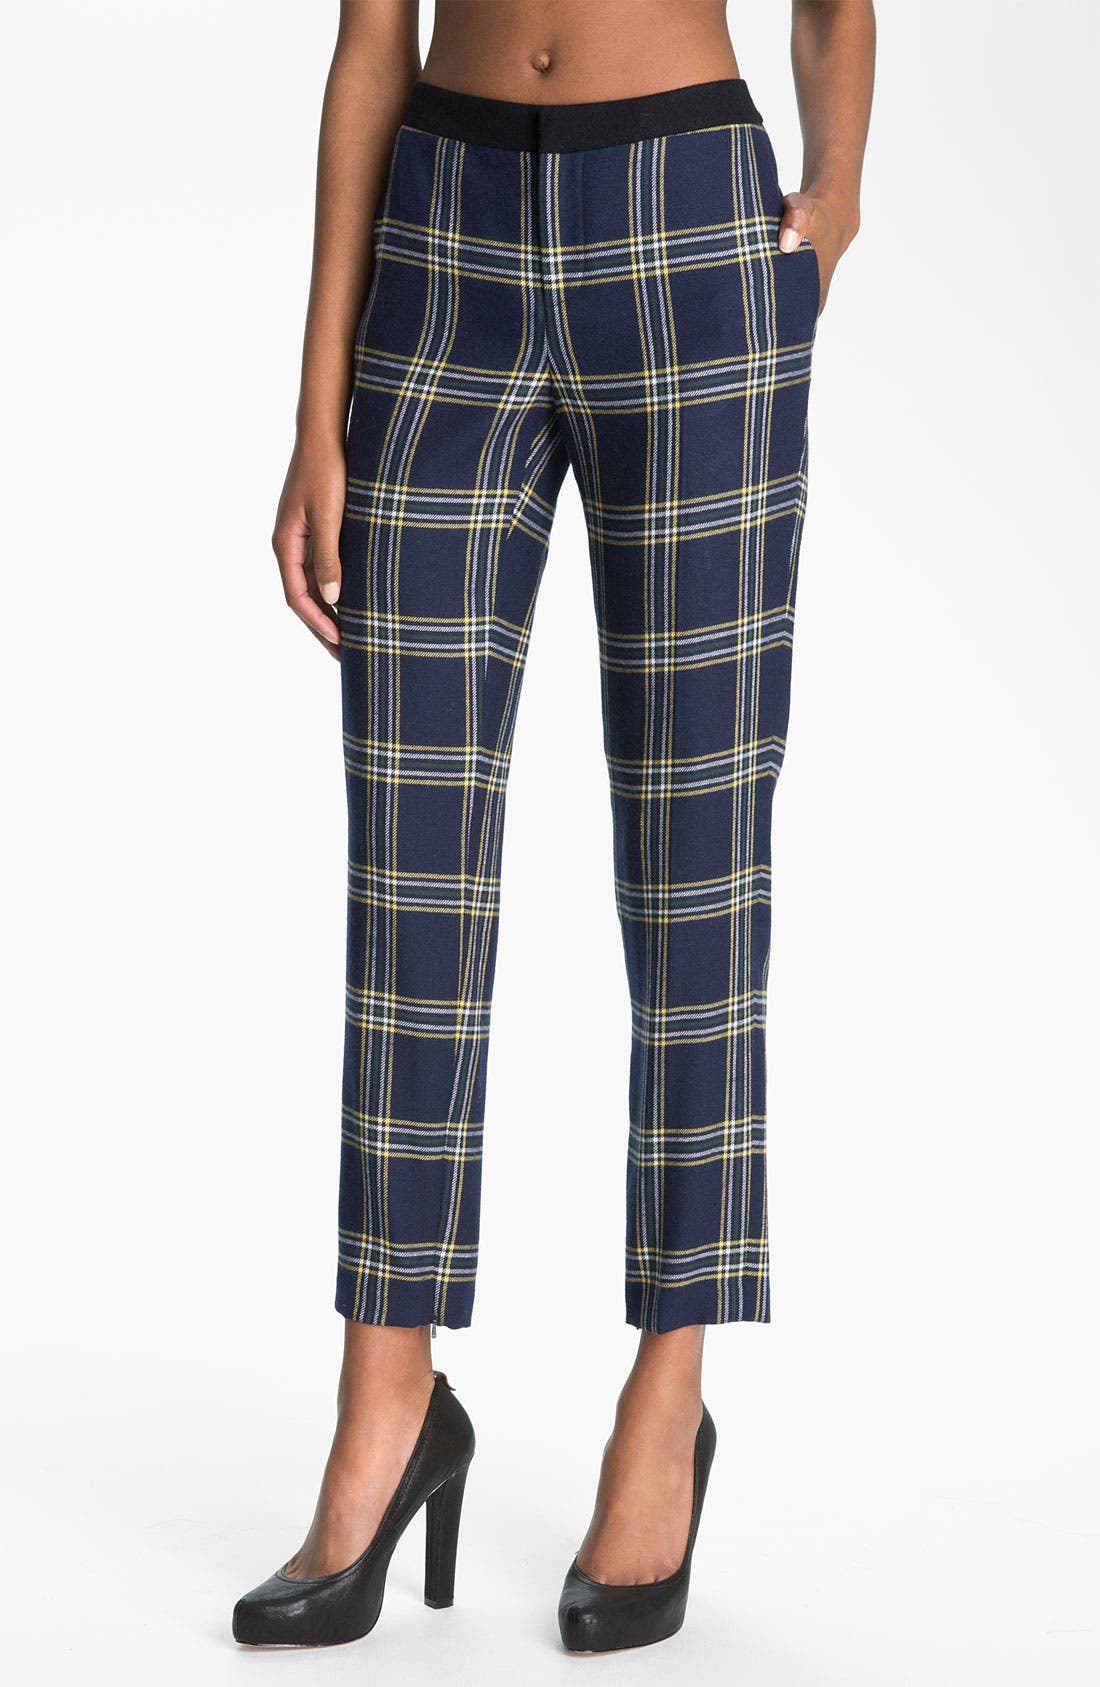 Alternate Image 1 Selected - Juicy Couture 'Eton' Plaid Crop Pants